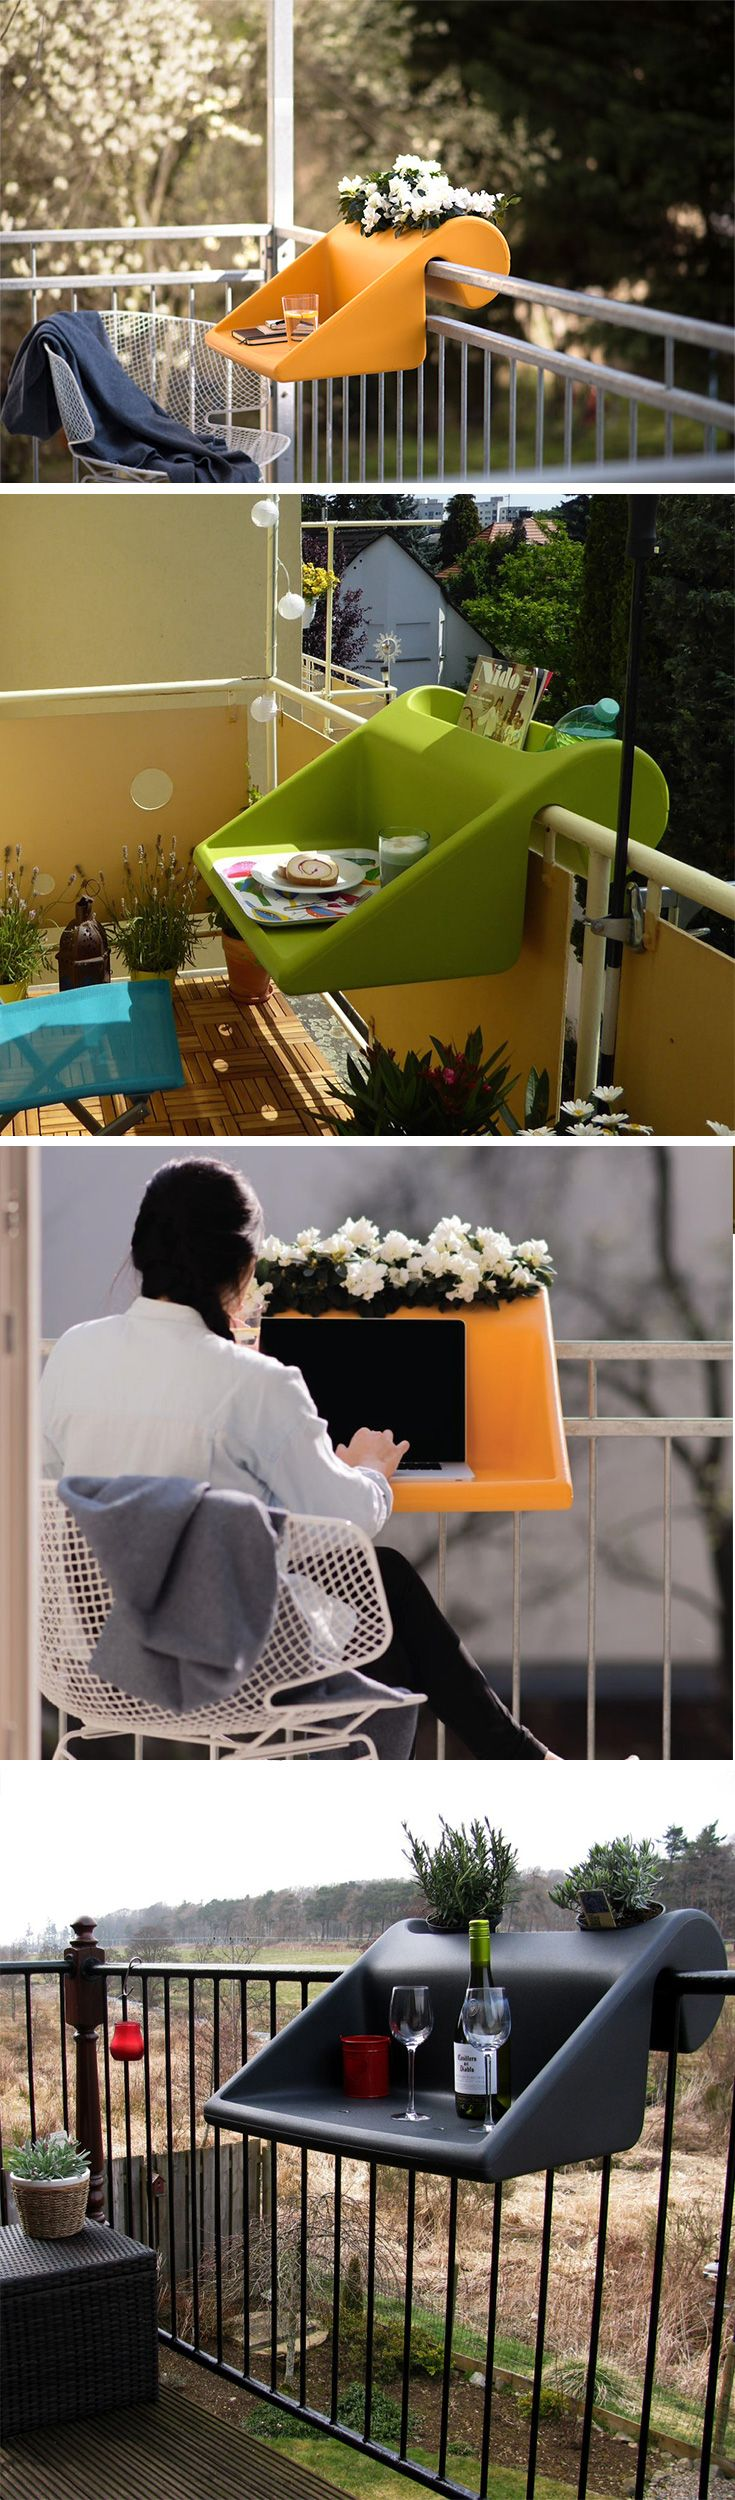 The Balkonzept desk fits onto any balcony, making the wonderful cityscape either your workplace, or a setting for a beautiful lunch/dinner date. Available in wonderfully fresh colors, it's sturdy enough to take the weight of a laptop, dining set, or a few potted plants. It uses a counter-balancing area which makes a great mini-garden, or even a book-case or bottle-rack. Buy Now!